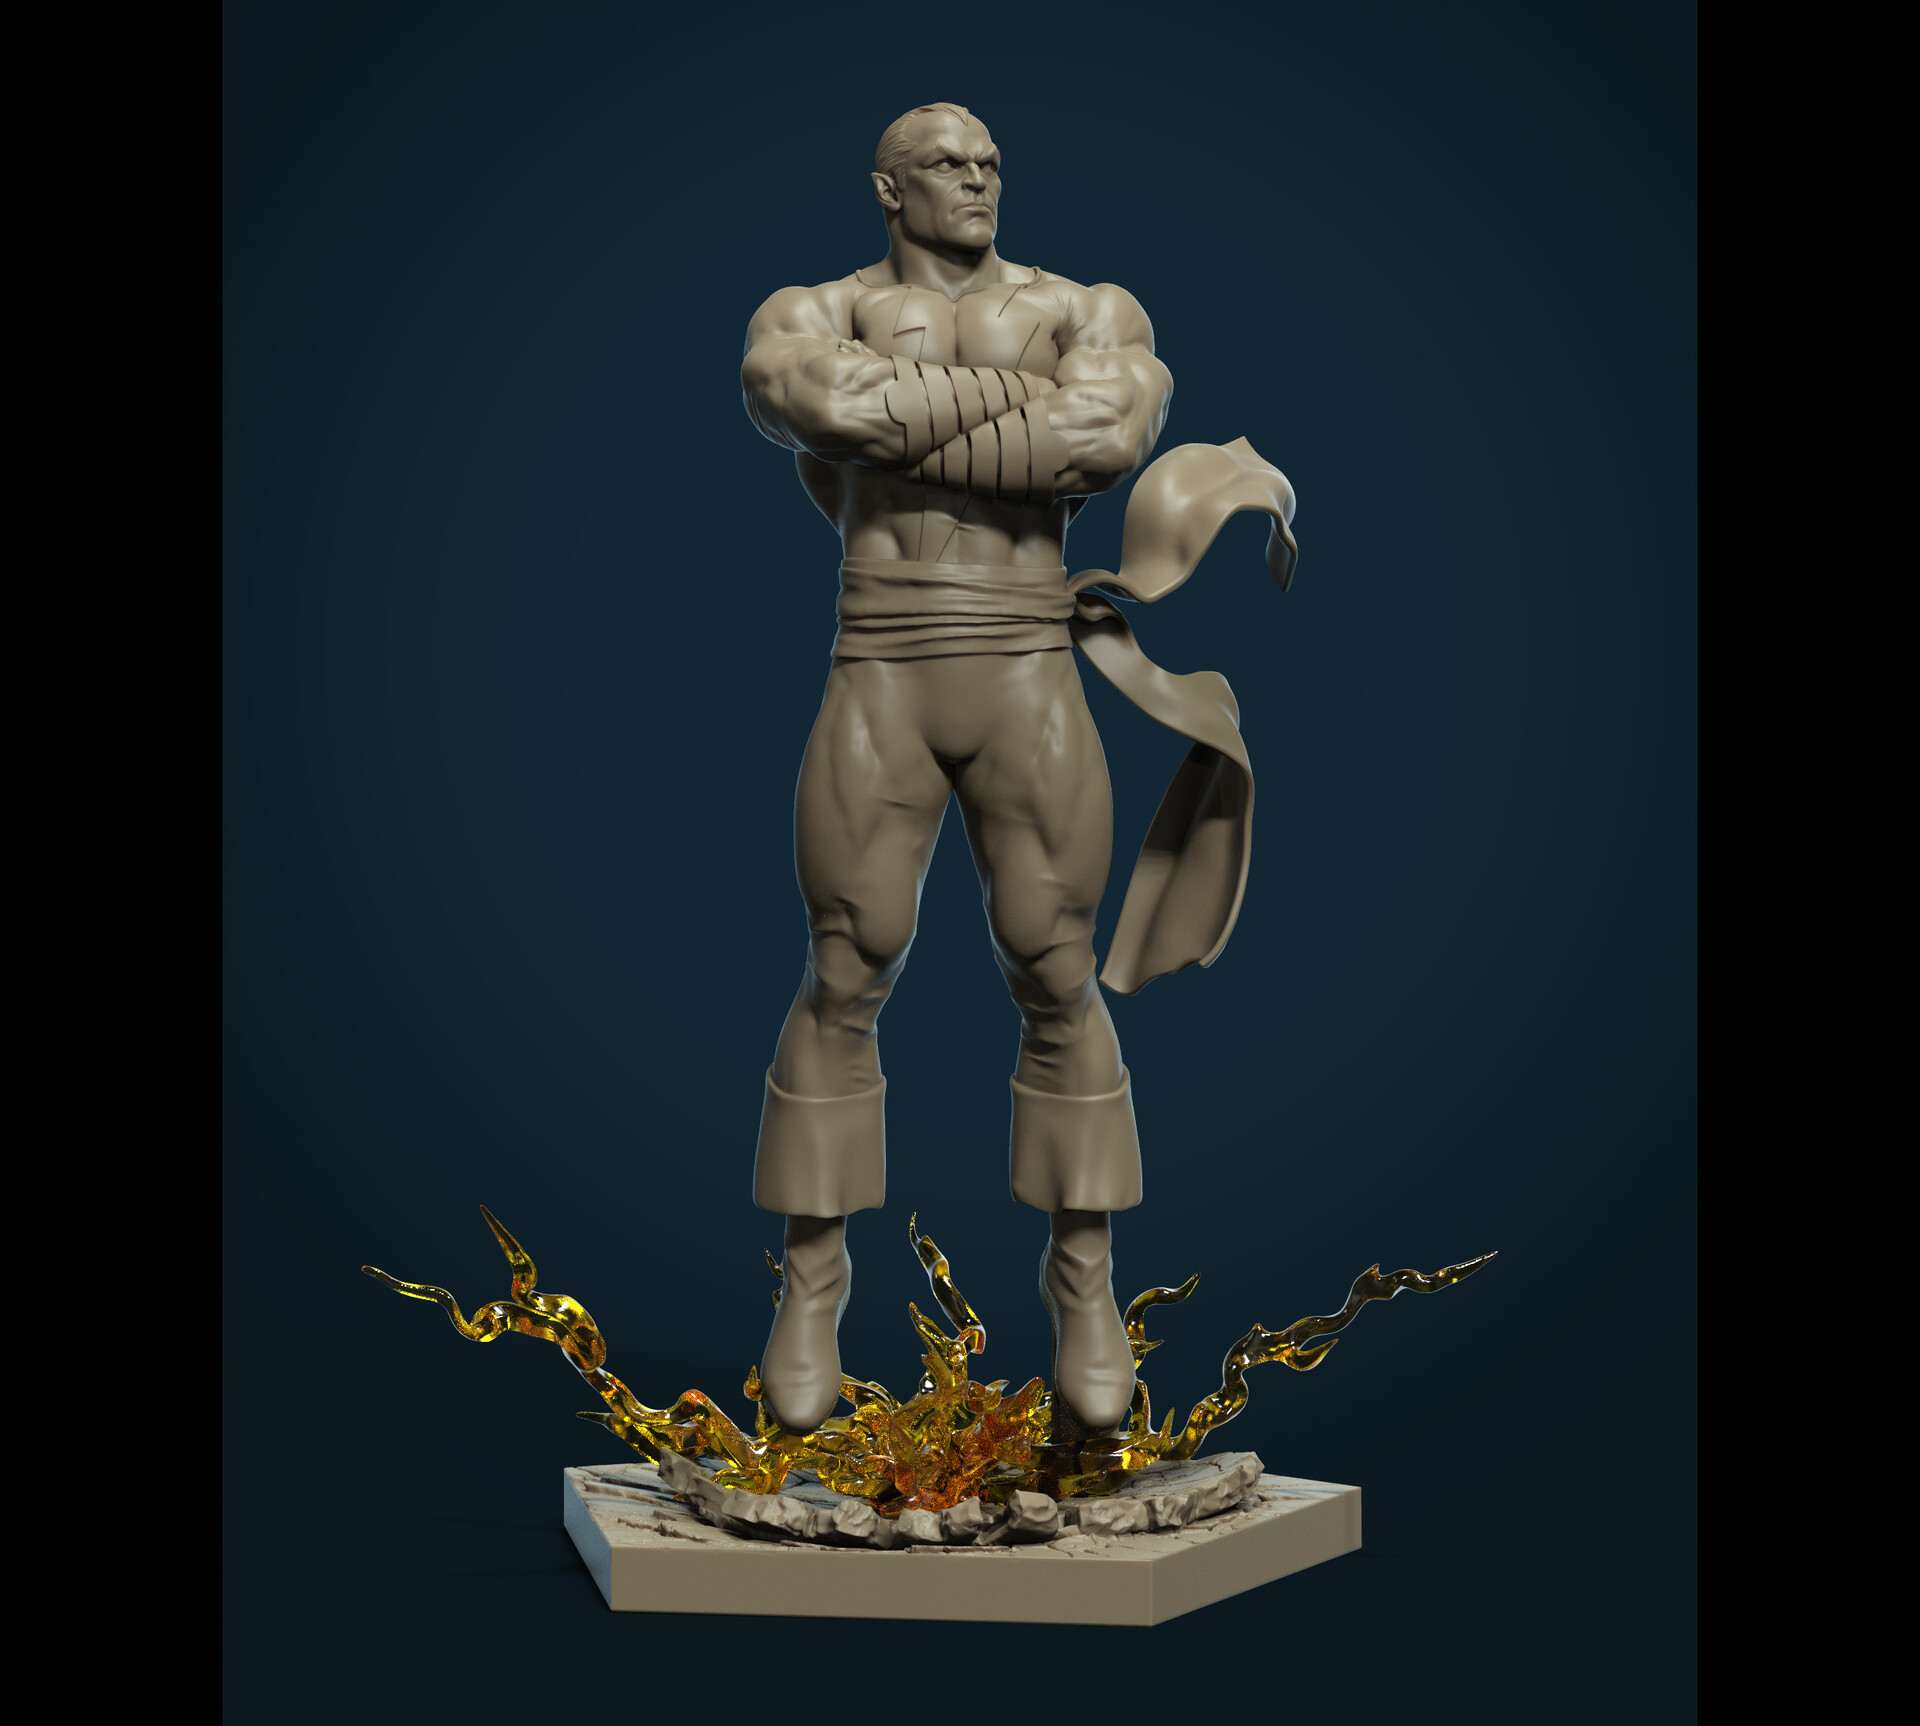 Victor hugo sousa blackadam clay 02